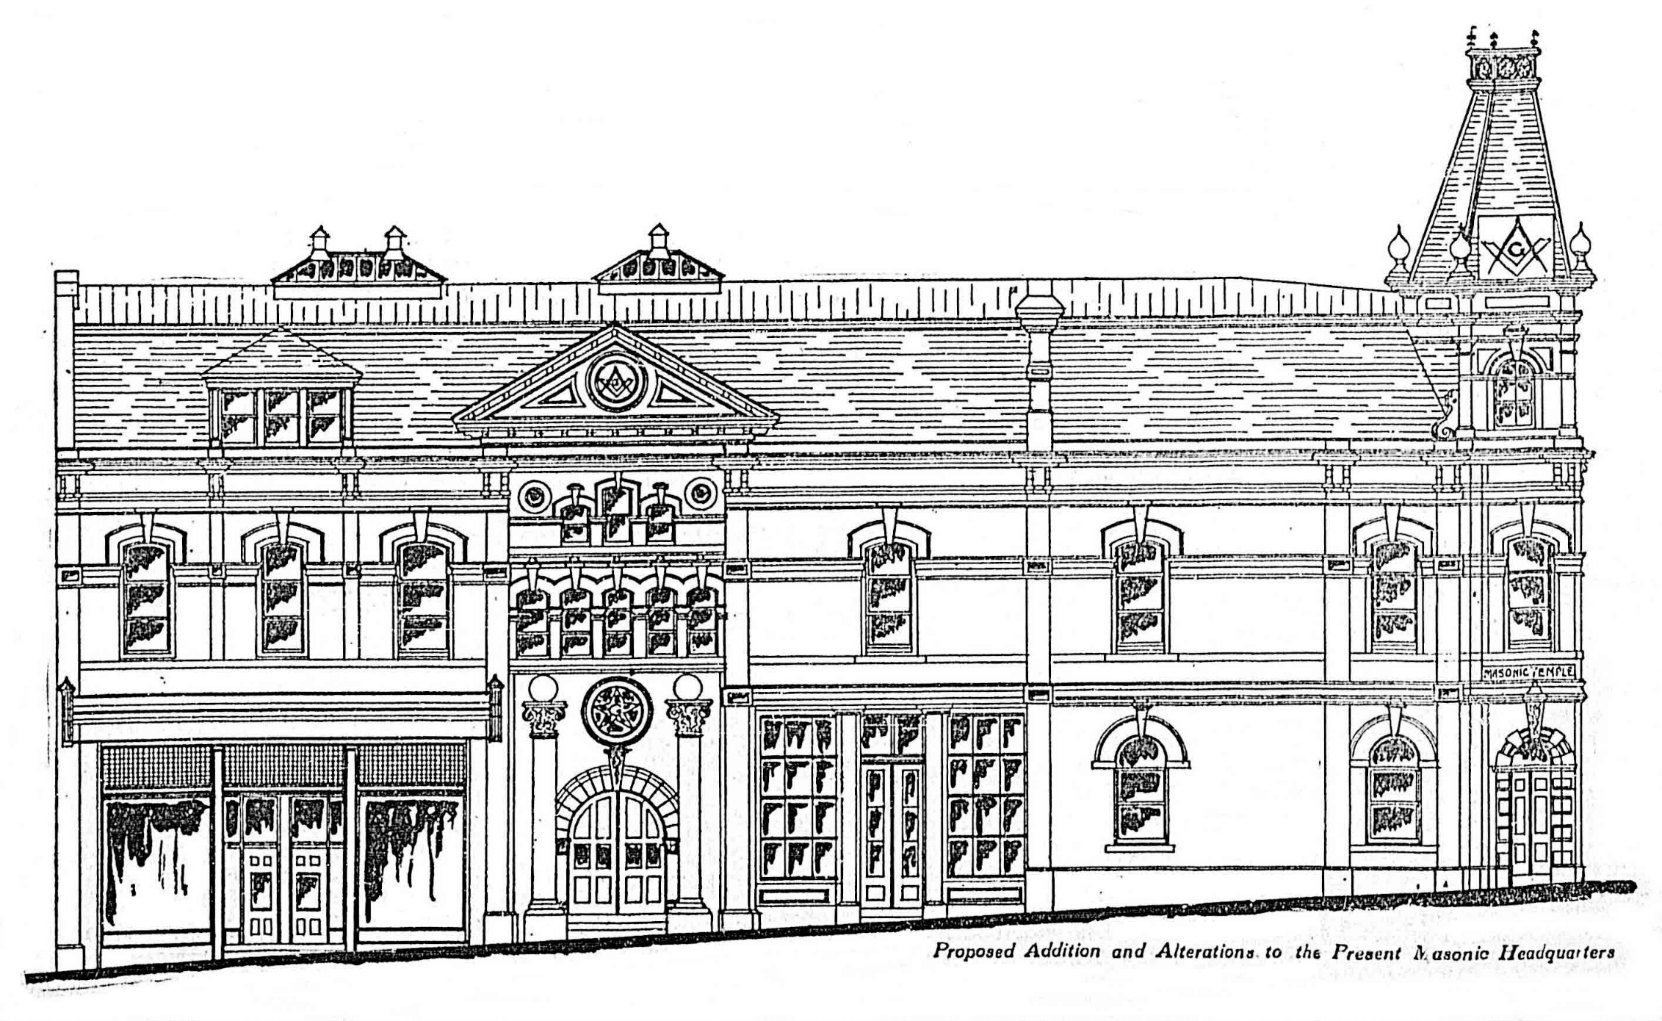 1909 architects' drawing of the 1909 additions and alterations to the Victoria Masonic Temple at 650 Fisgard Street.